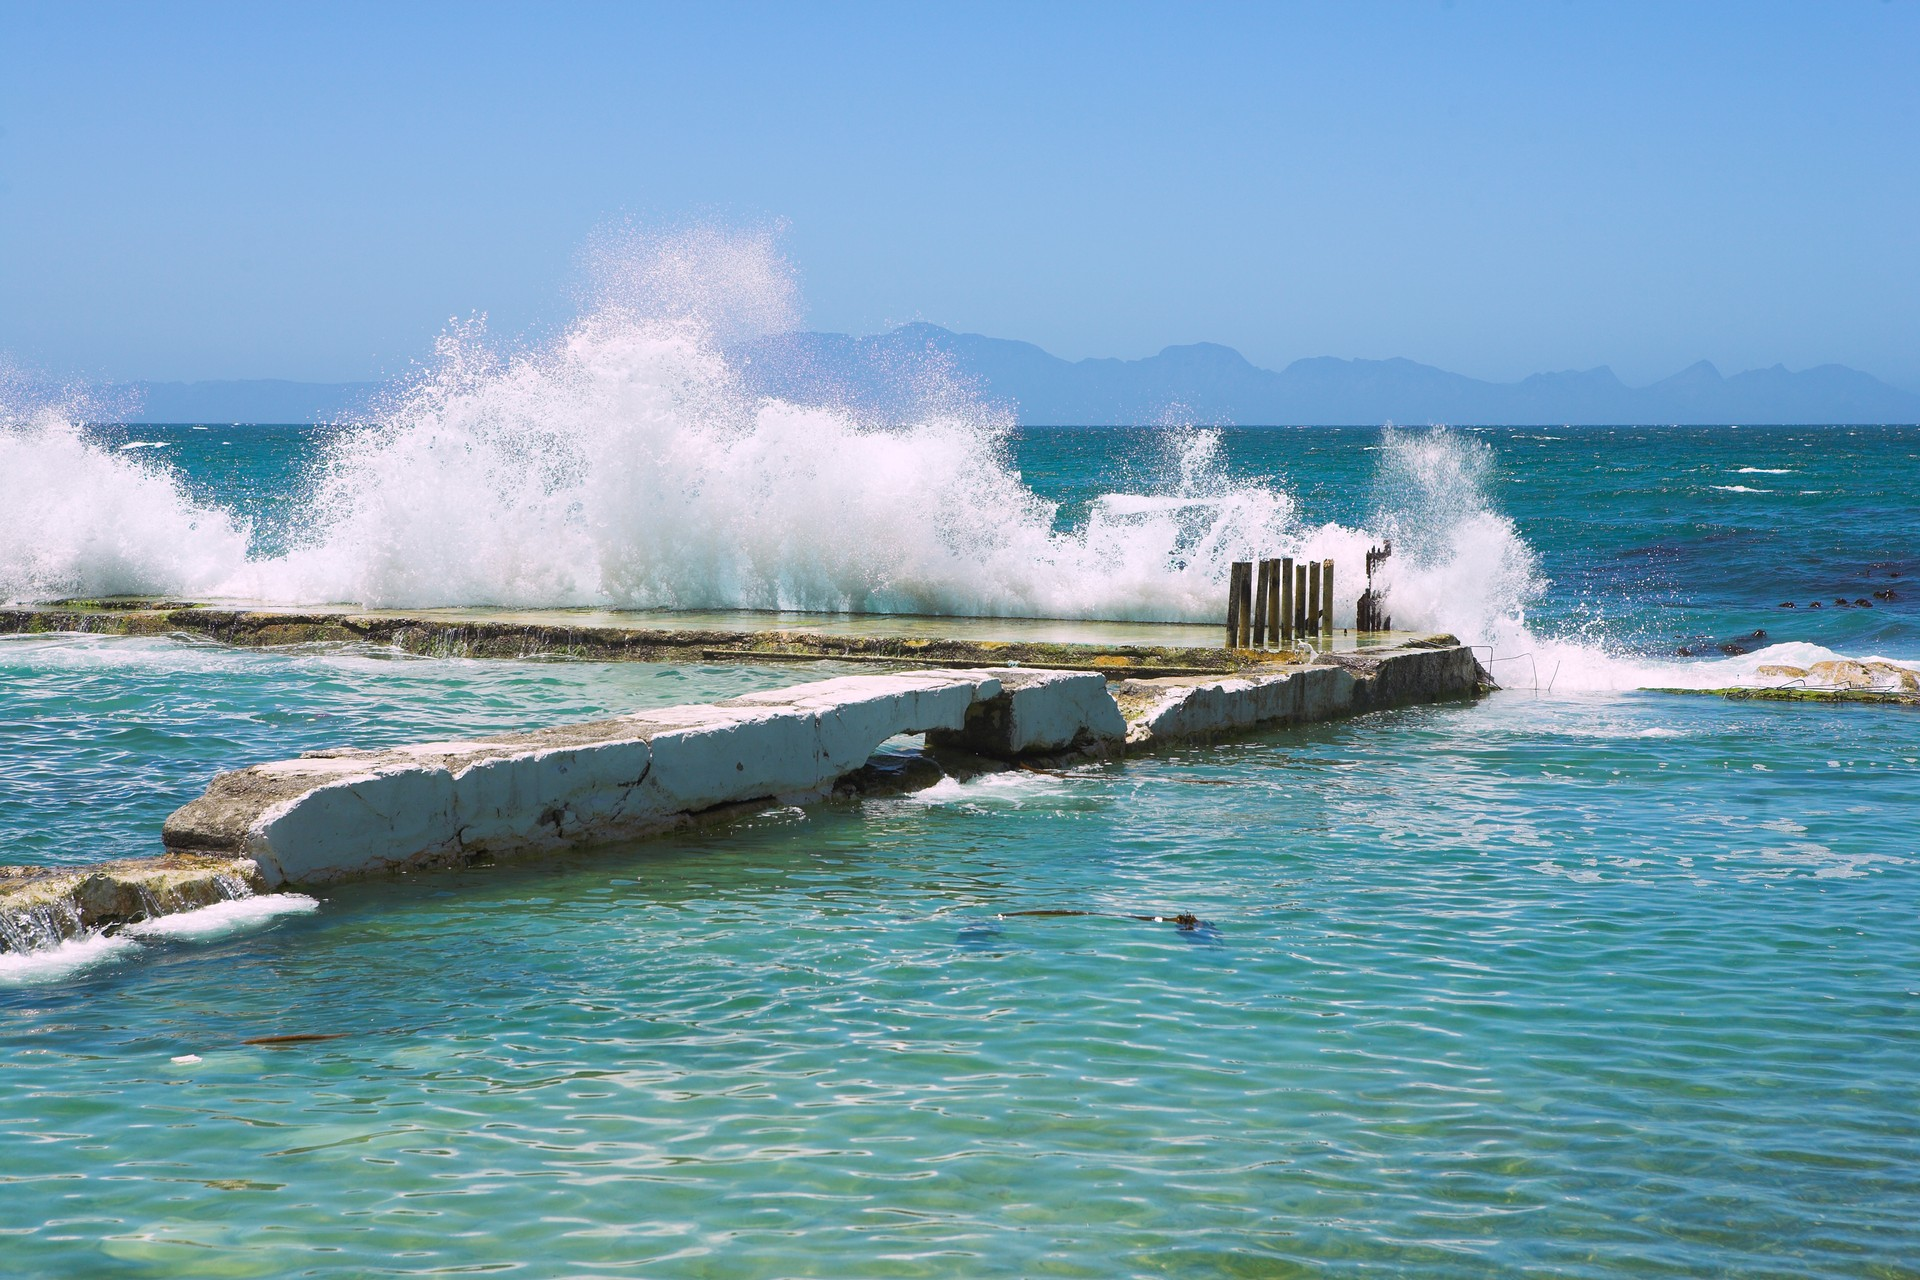 Waves breaking against the wall of a tidal pool in Kalk Bay